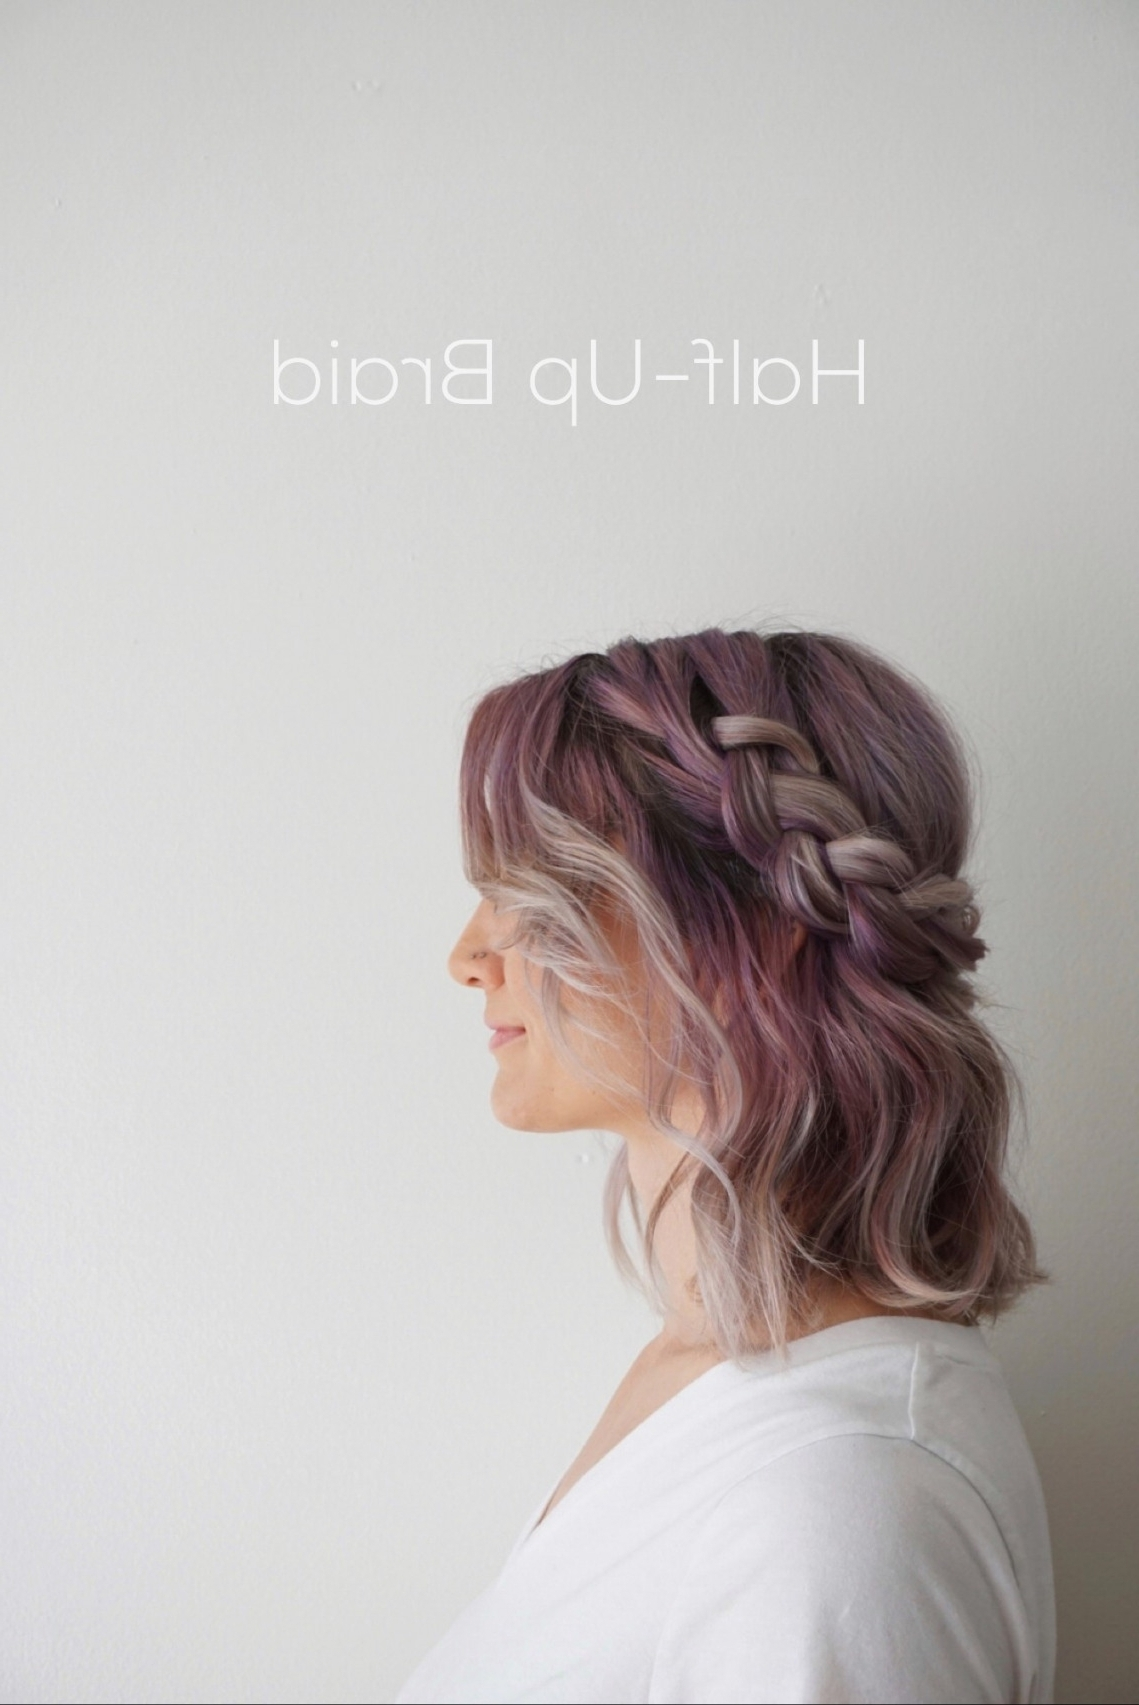 Widely Used Shoulder Length Hair Braided Hairstyles Intended For Braid Hairstyles : New Hairstyles For Shoulder Length Hair Braids (View 5 of 15)